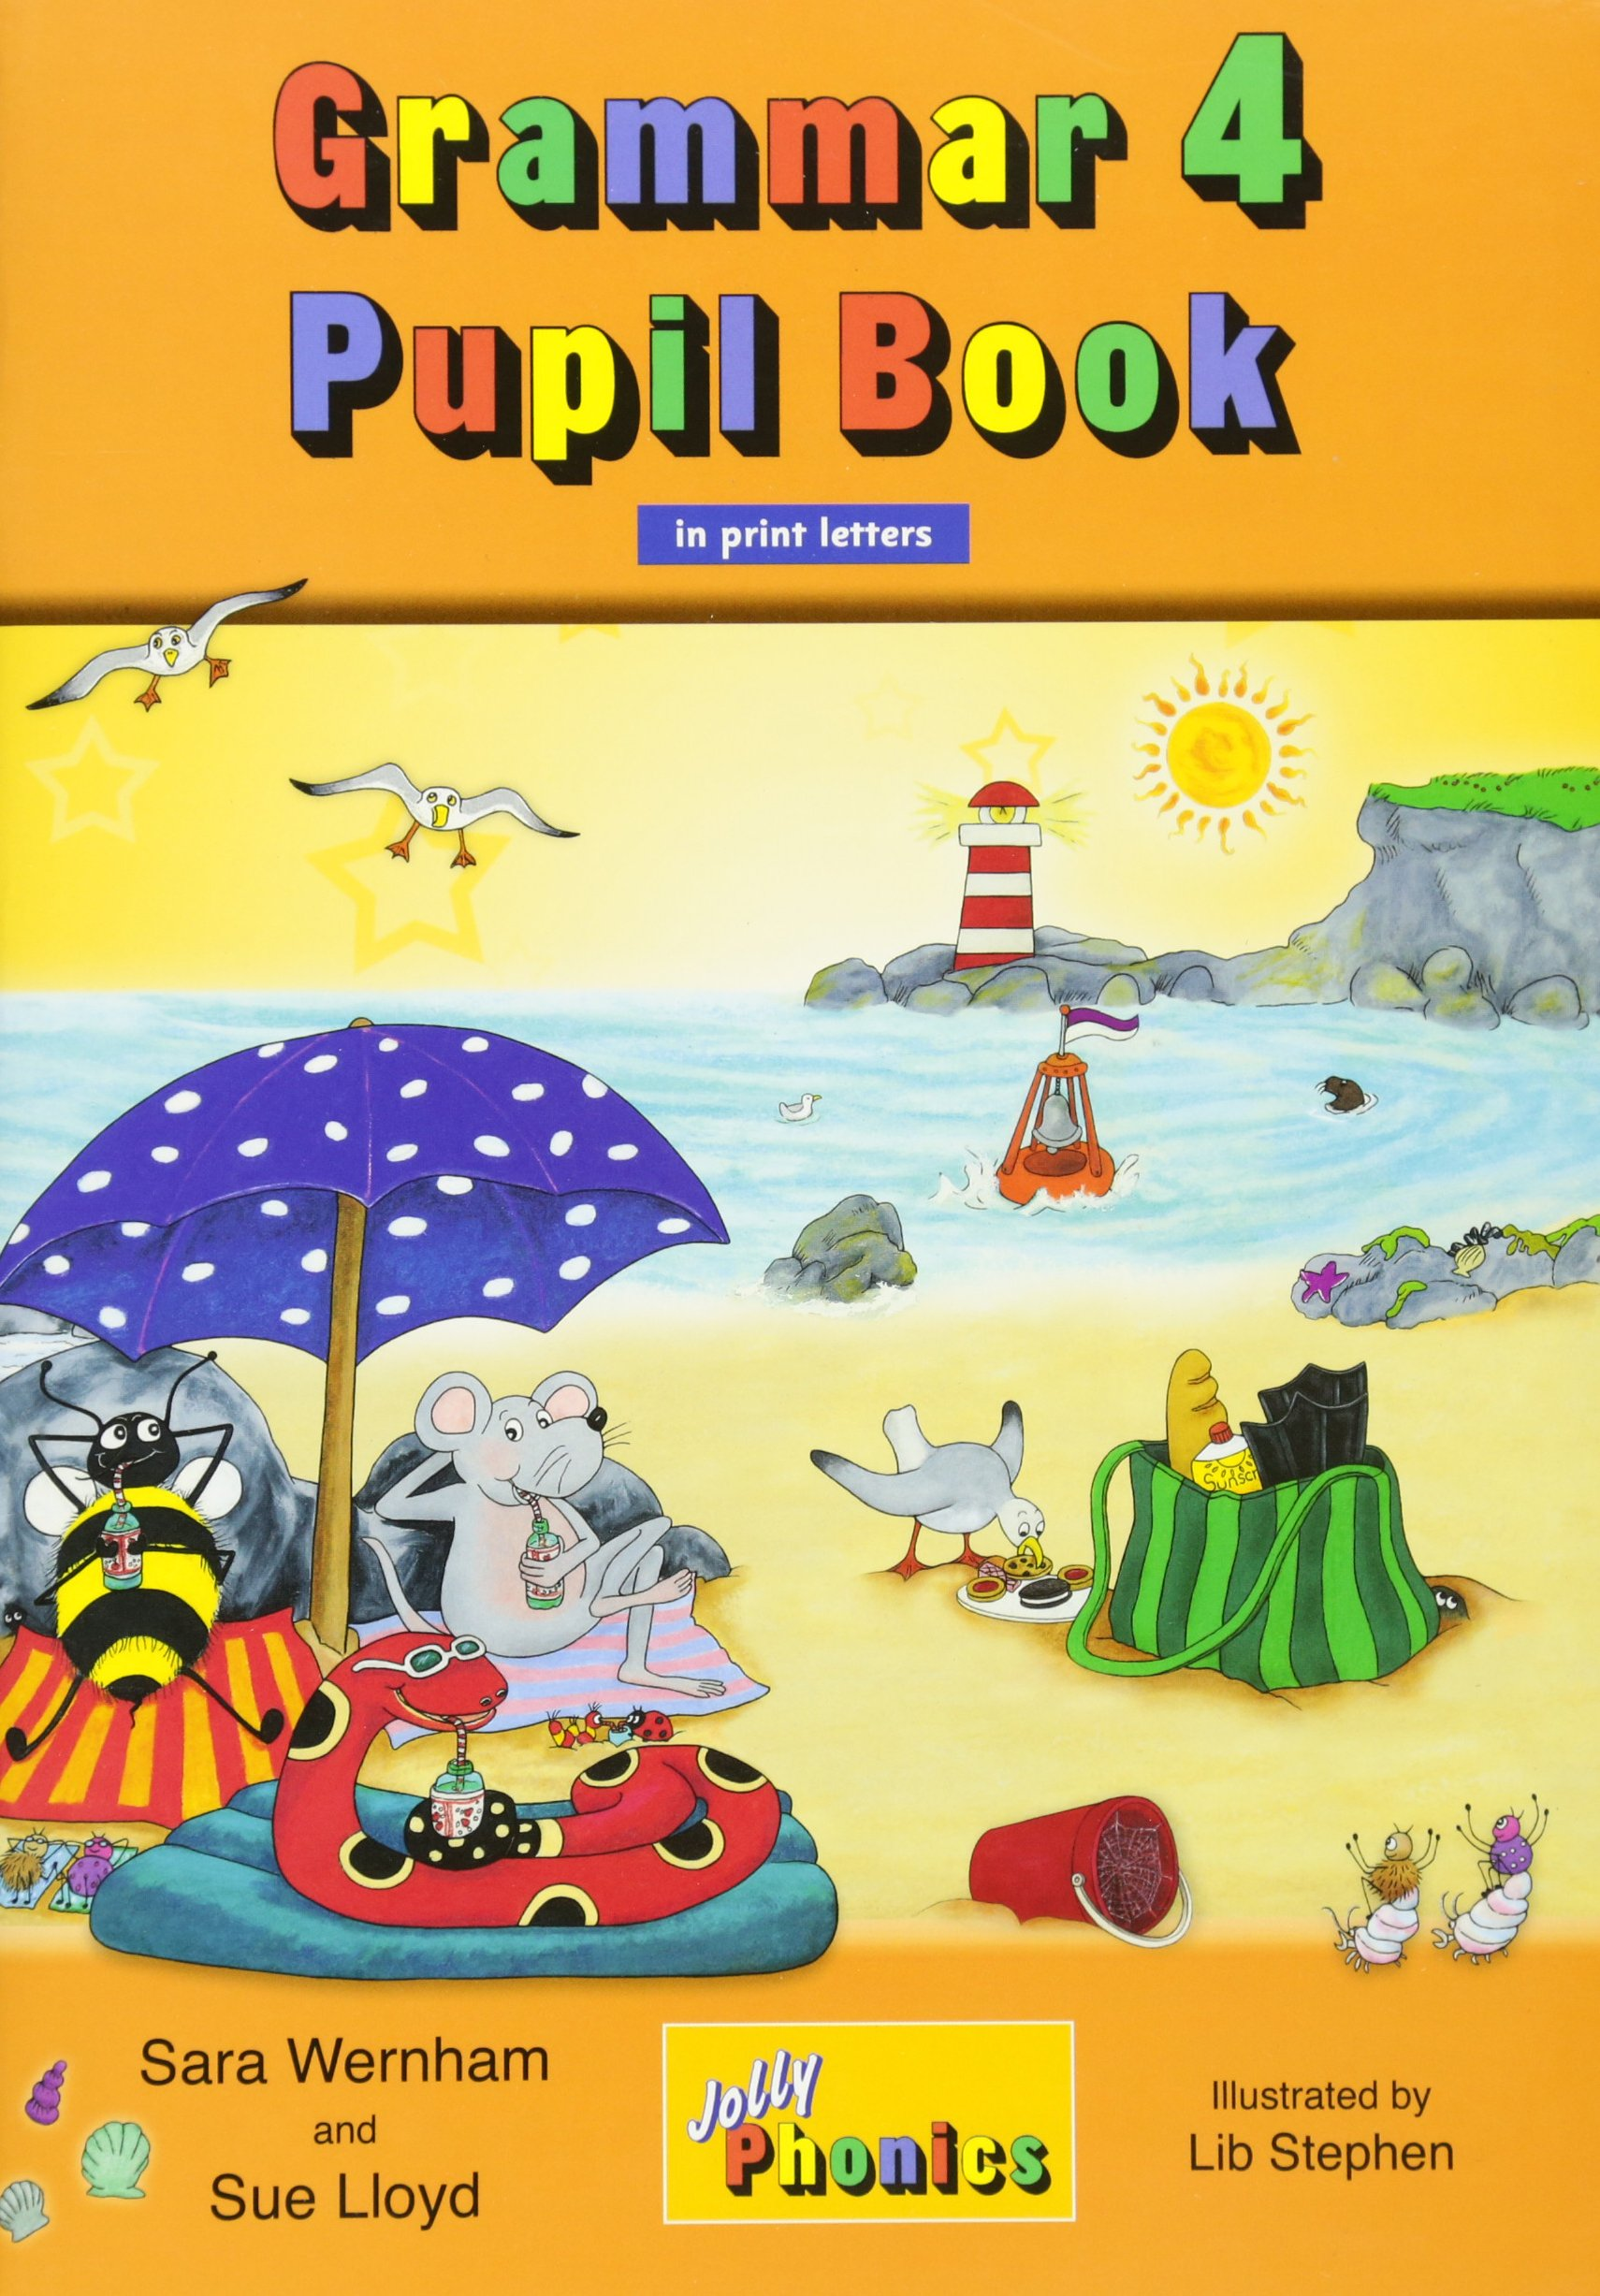 Grammar 4 Pupil Book: In Print Letters (British English edition) (Jolly  Phonics) Paperback – Student Edition, 1 Sep 2015